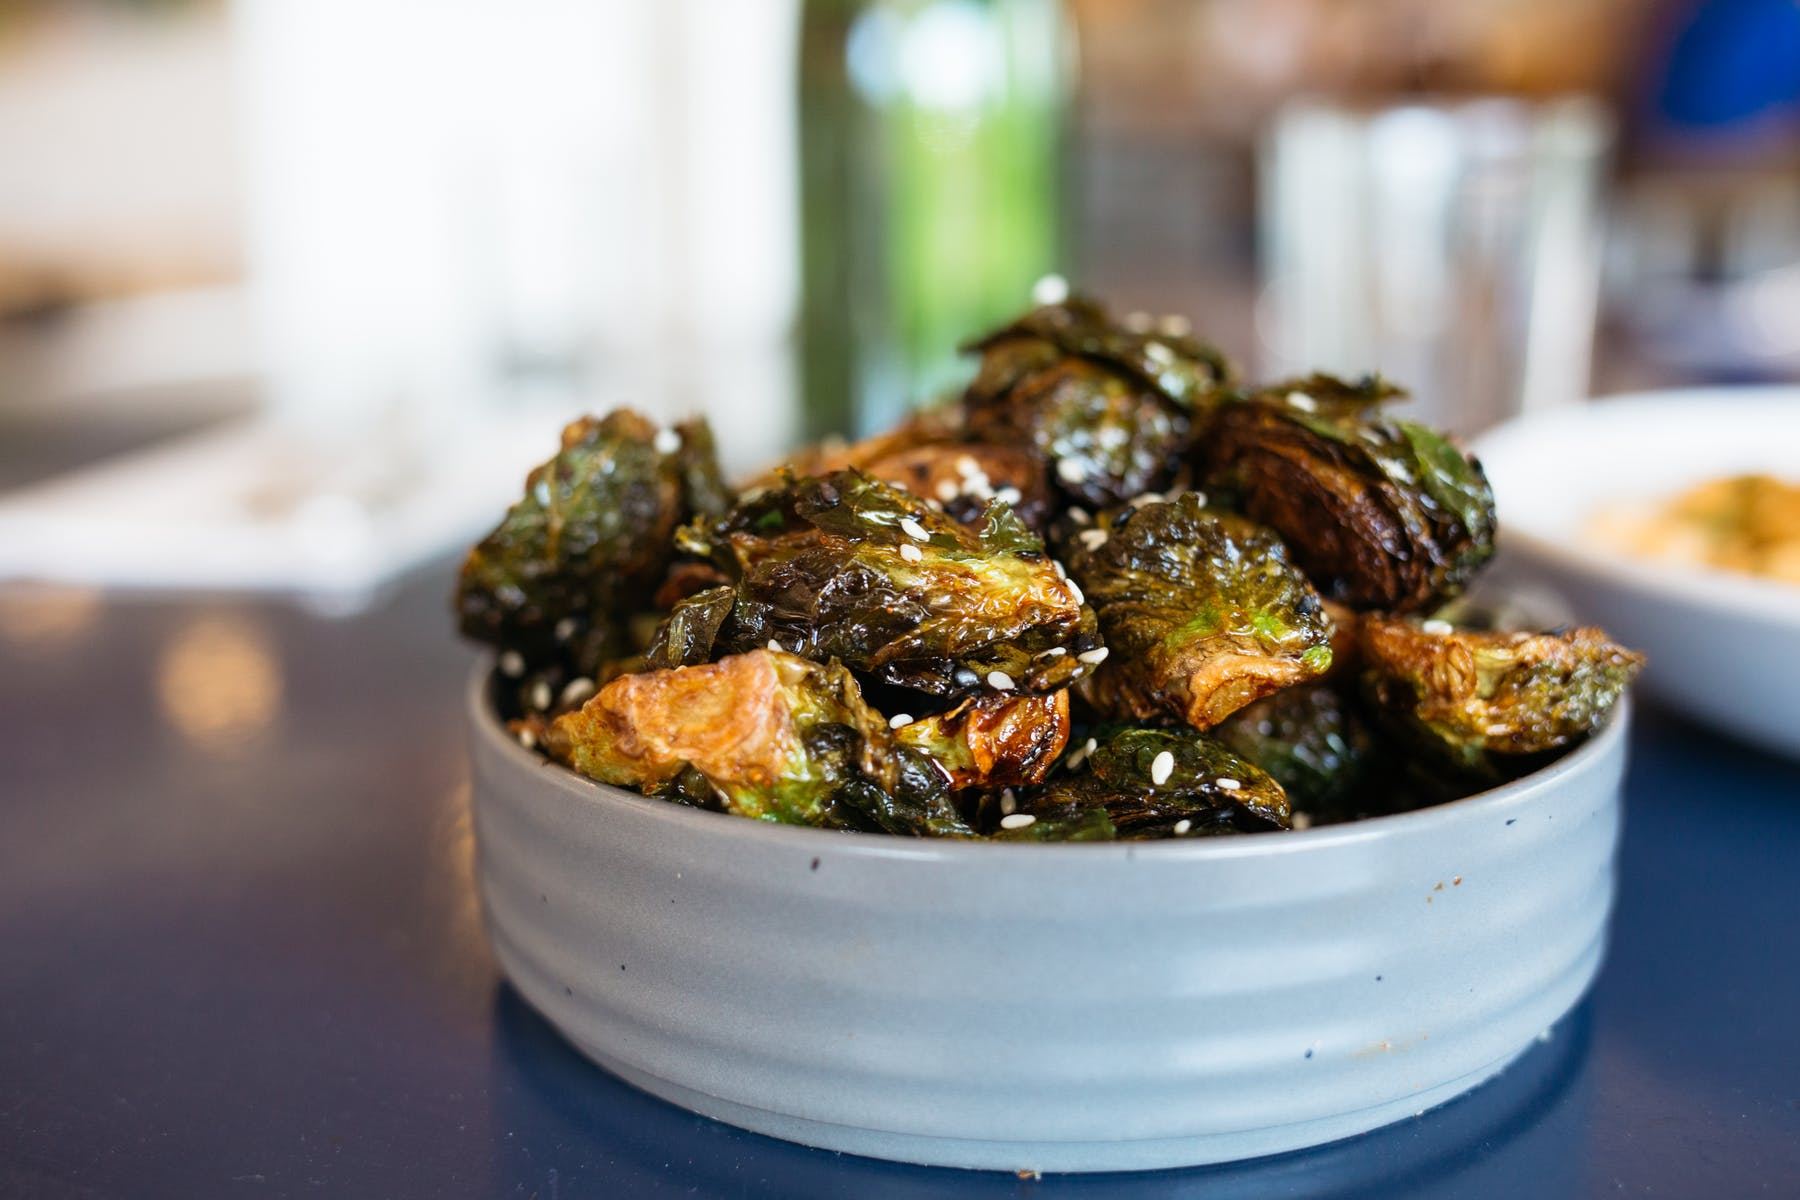 Brussel Sprouts, Magnolia, Farm to Table, Southern Cuisine, Breakfast, Brunch, Lunch, Corey McEntyre, Magnolia Market, Local